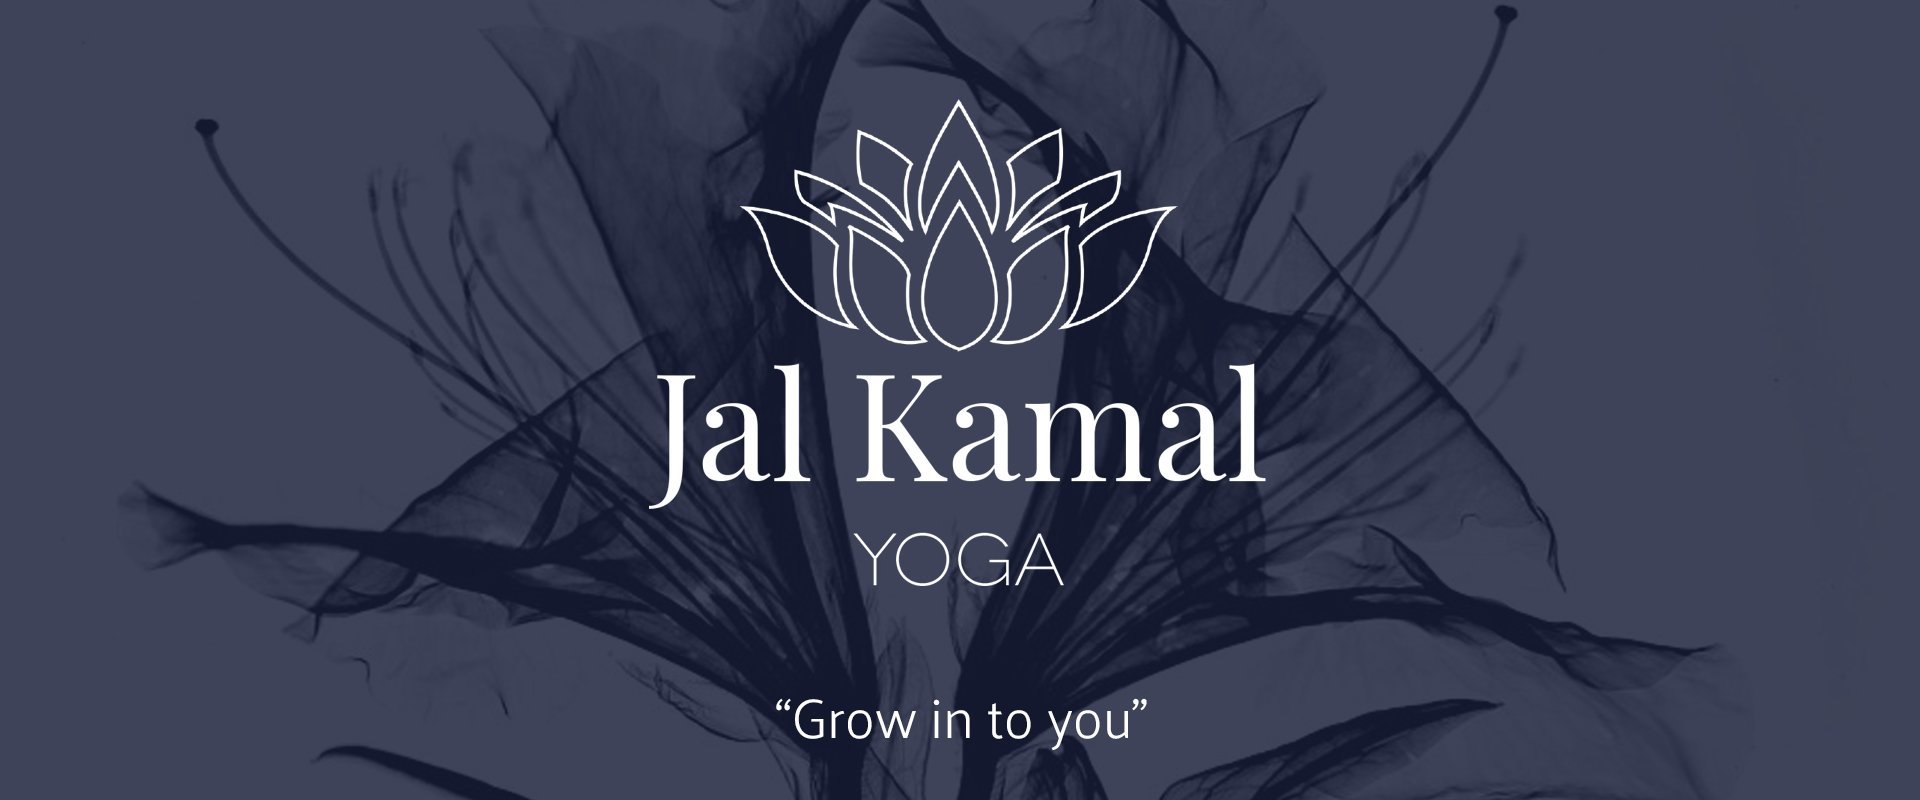 Jal-Kamal-Yoga-Header